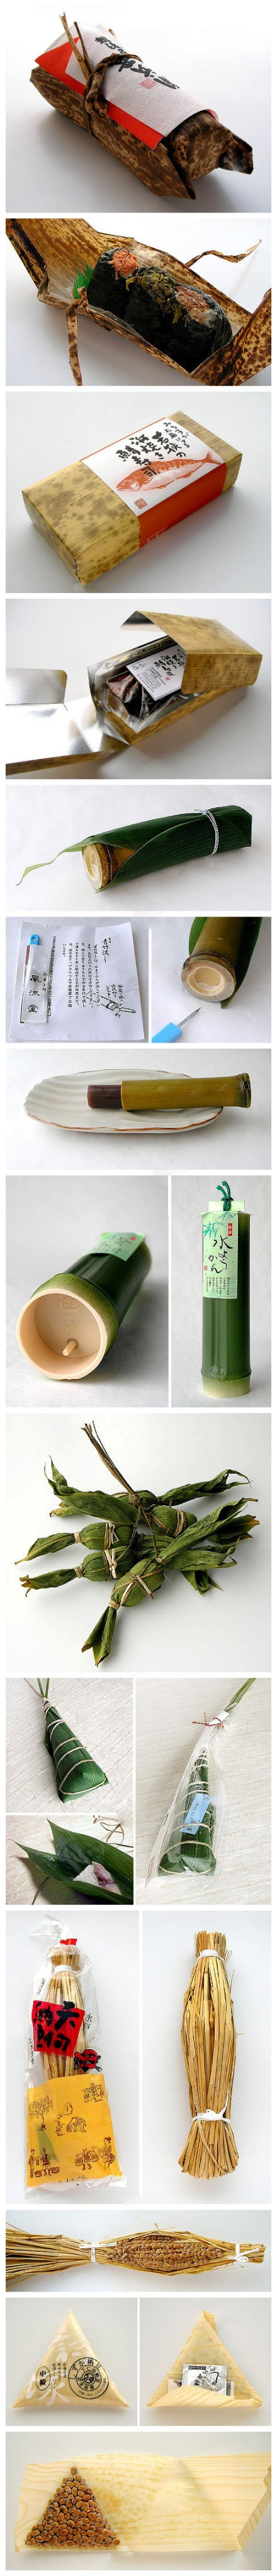 材料 Back to basics #packaging #design #inspiration PD